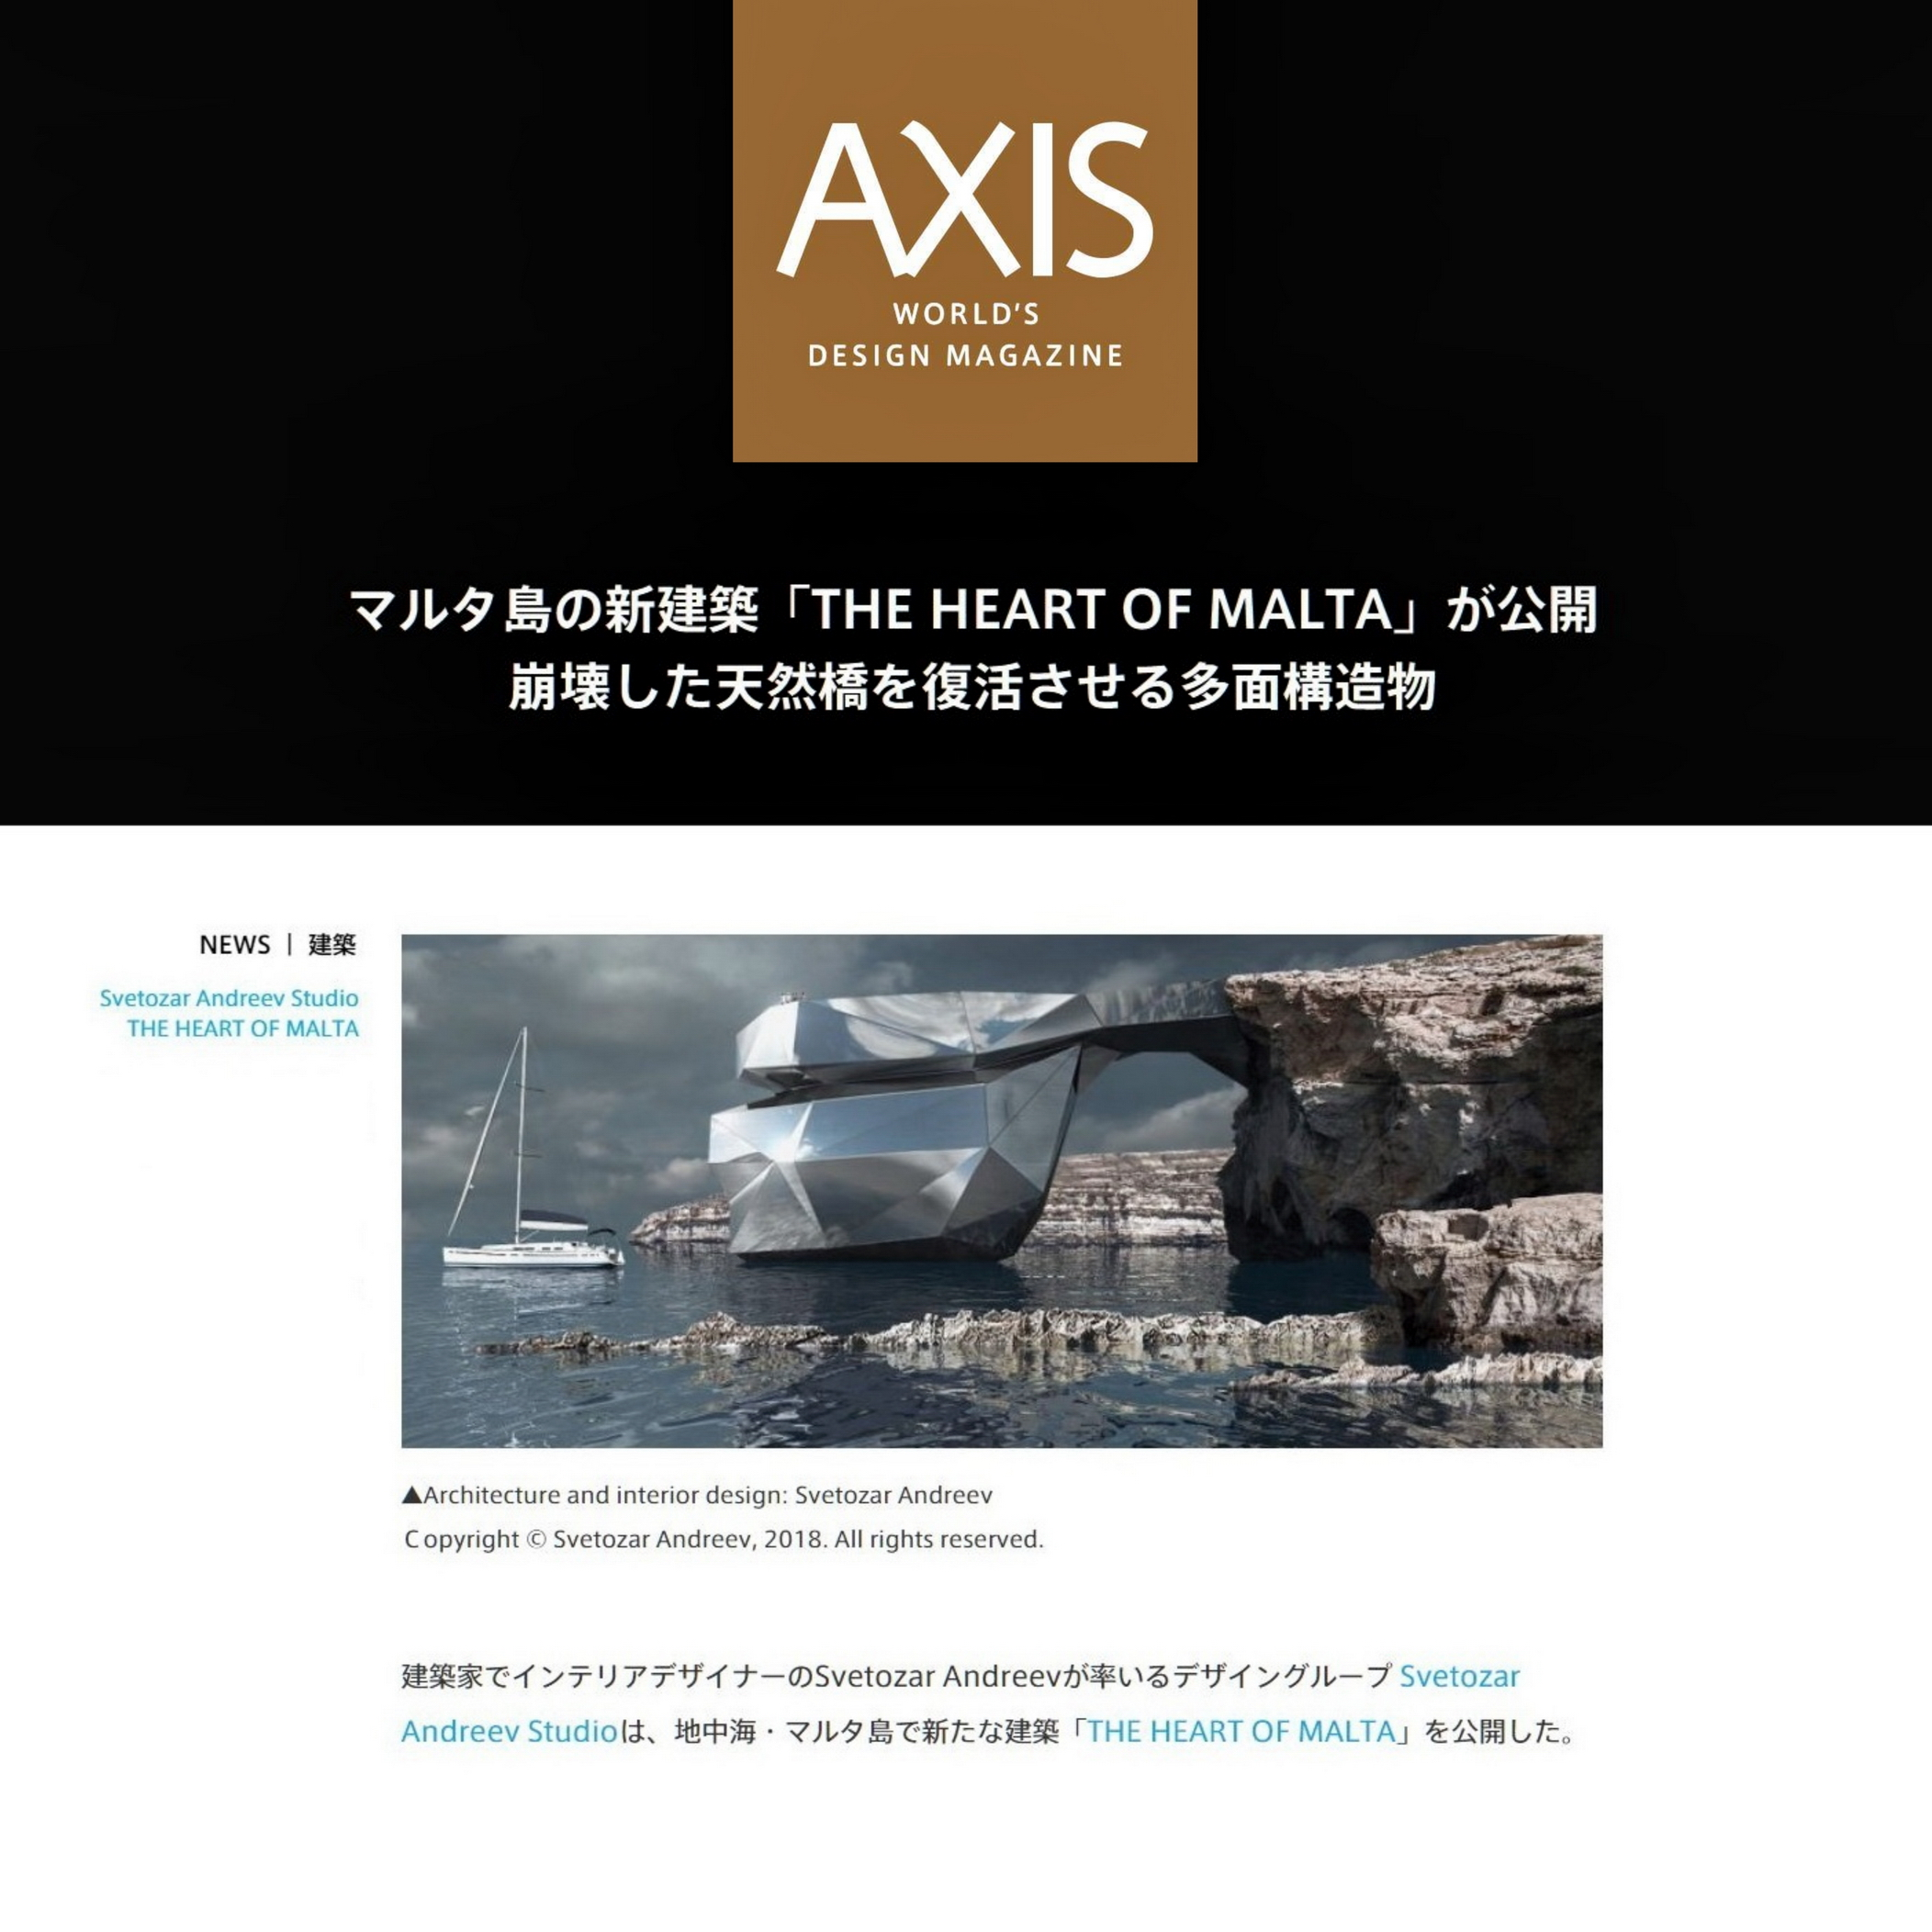 Axis Design Magazine